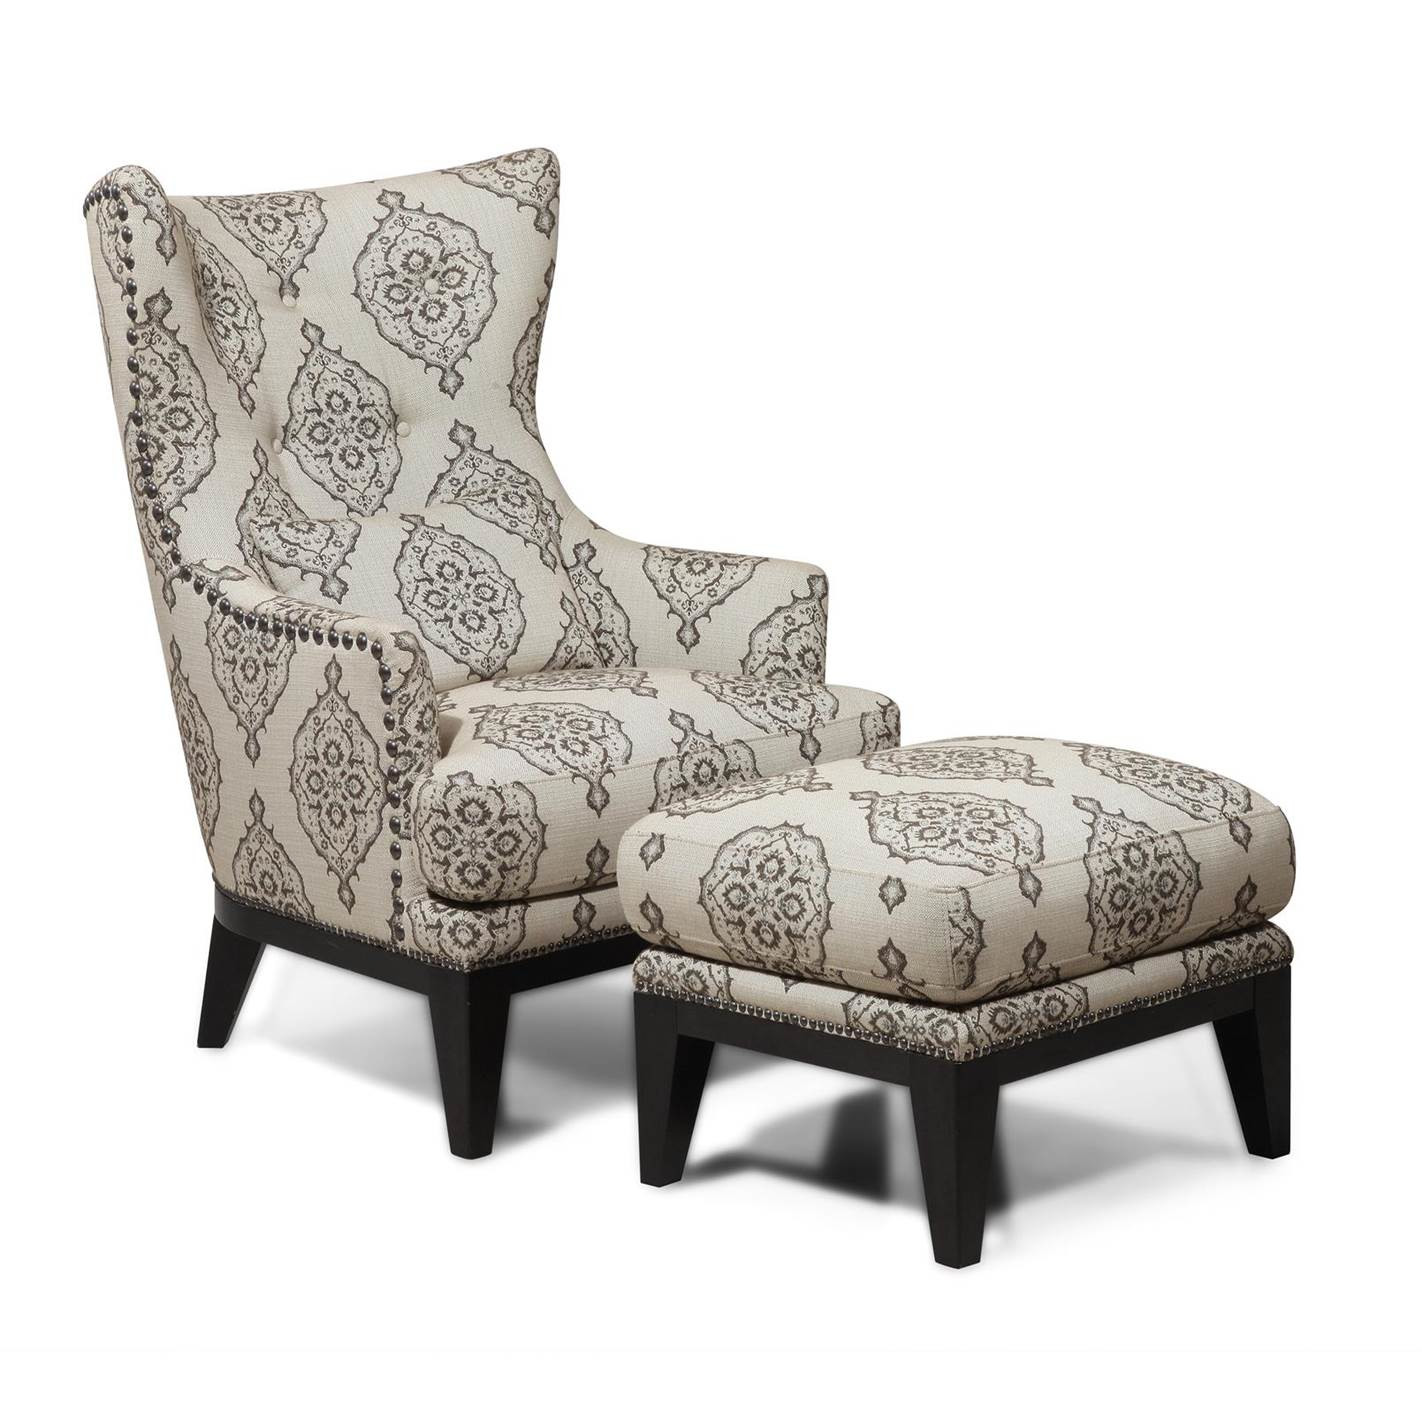 Attractive wing back chair with Solid Strong wood Furniture Design for Dining chair and Living Room Chair Ideas